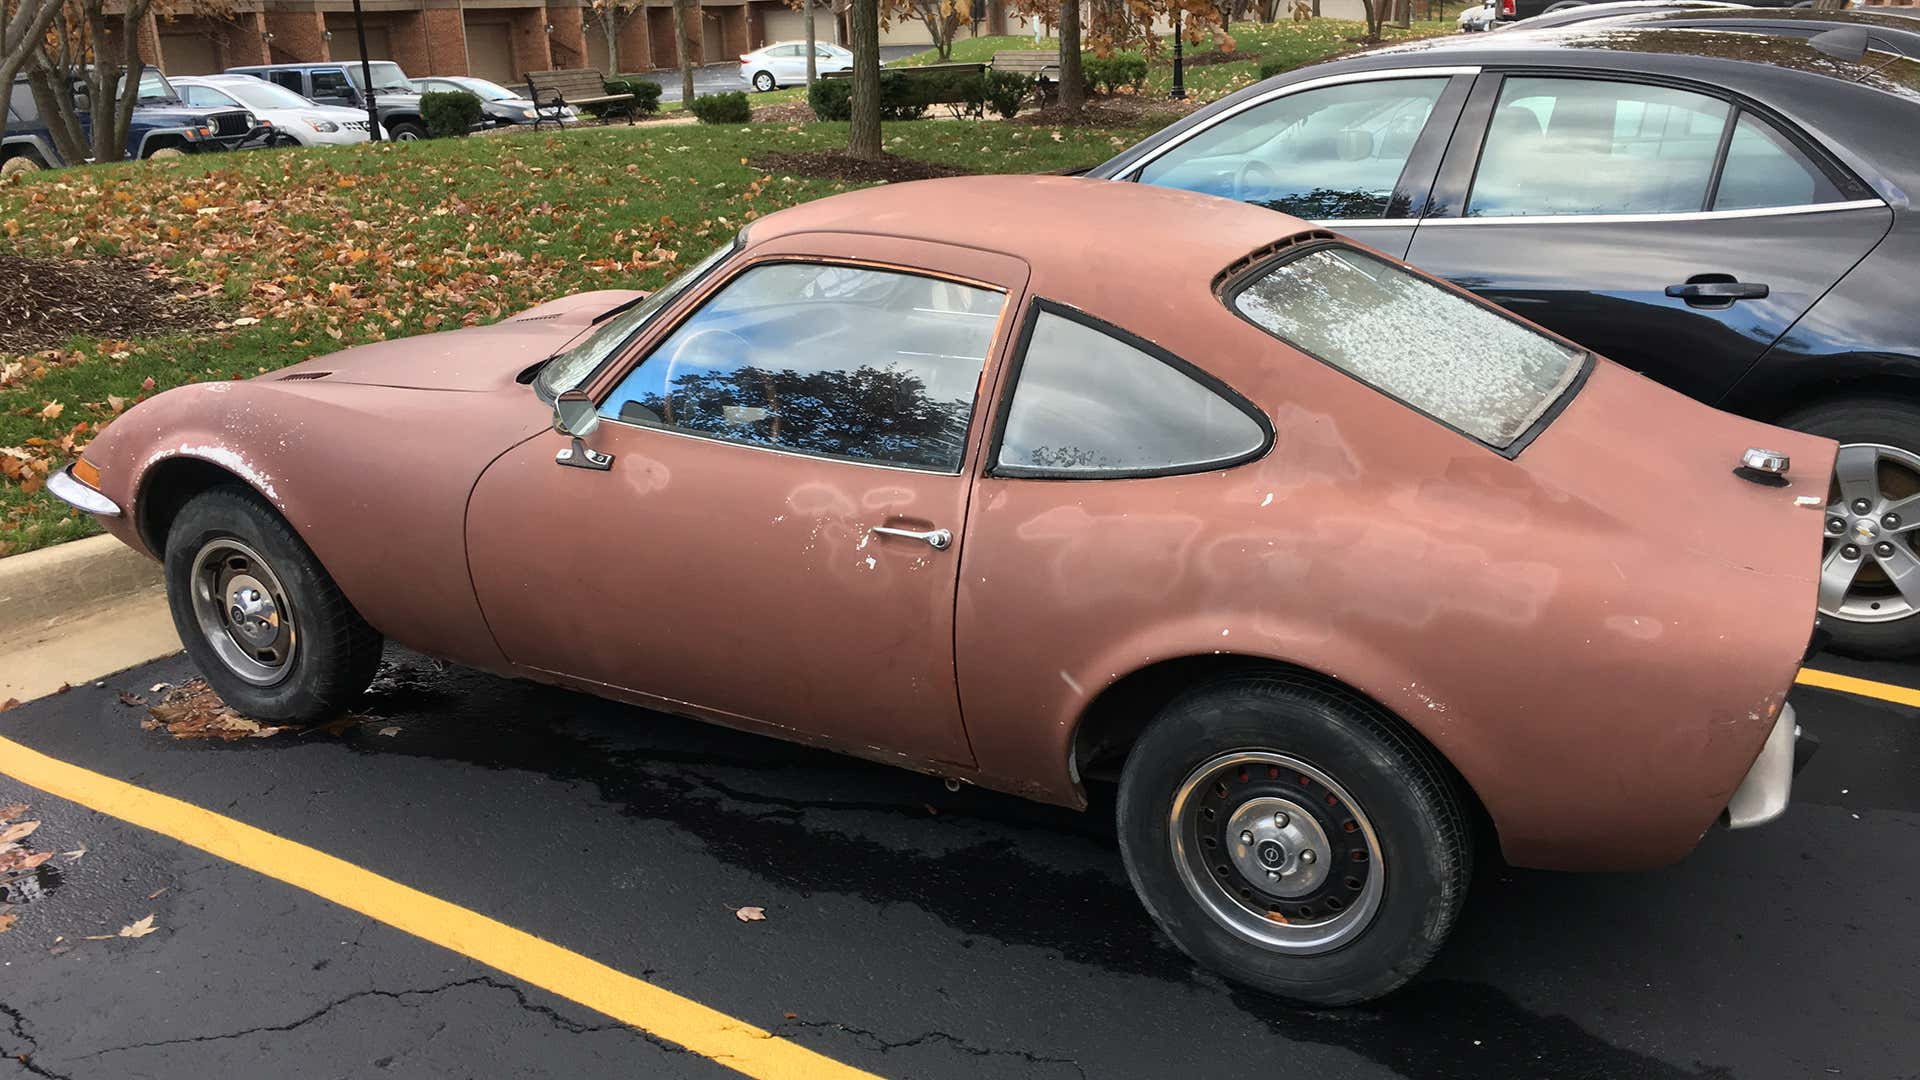 A 1970 Opel GT in a parking lot.